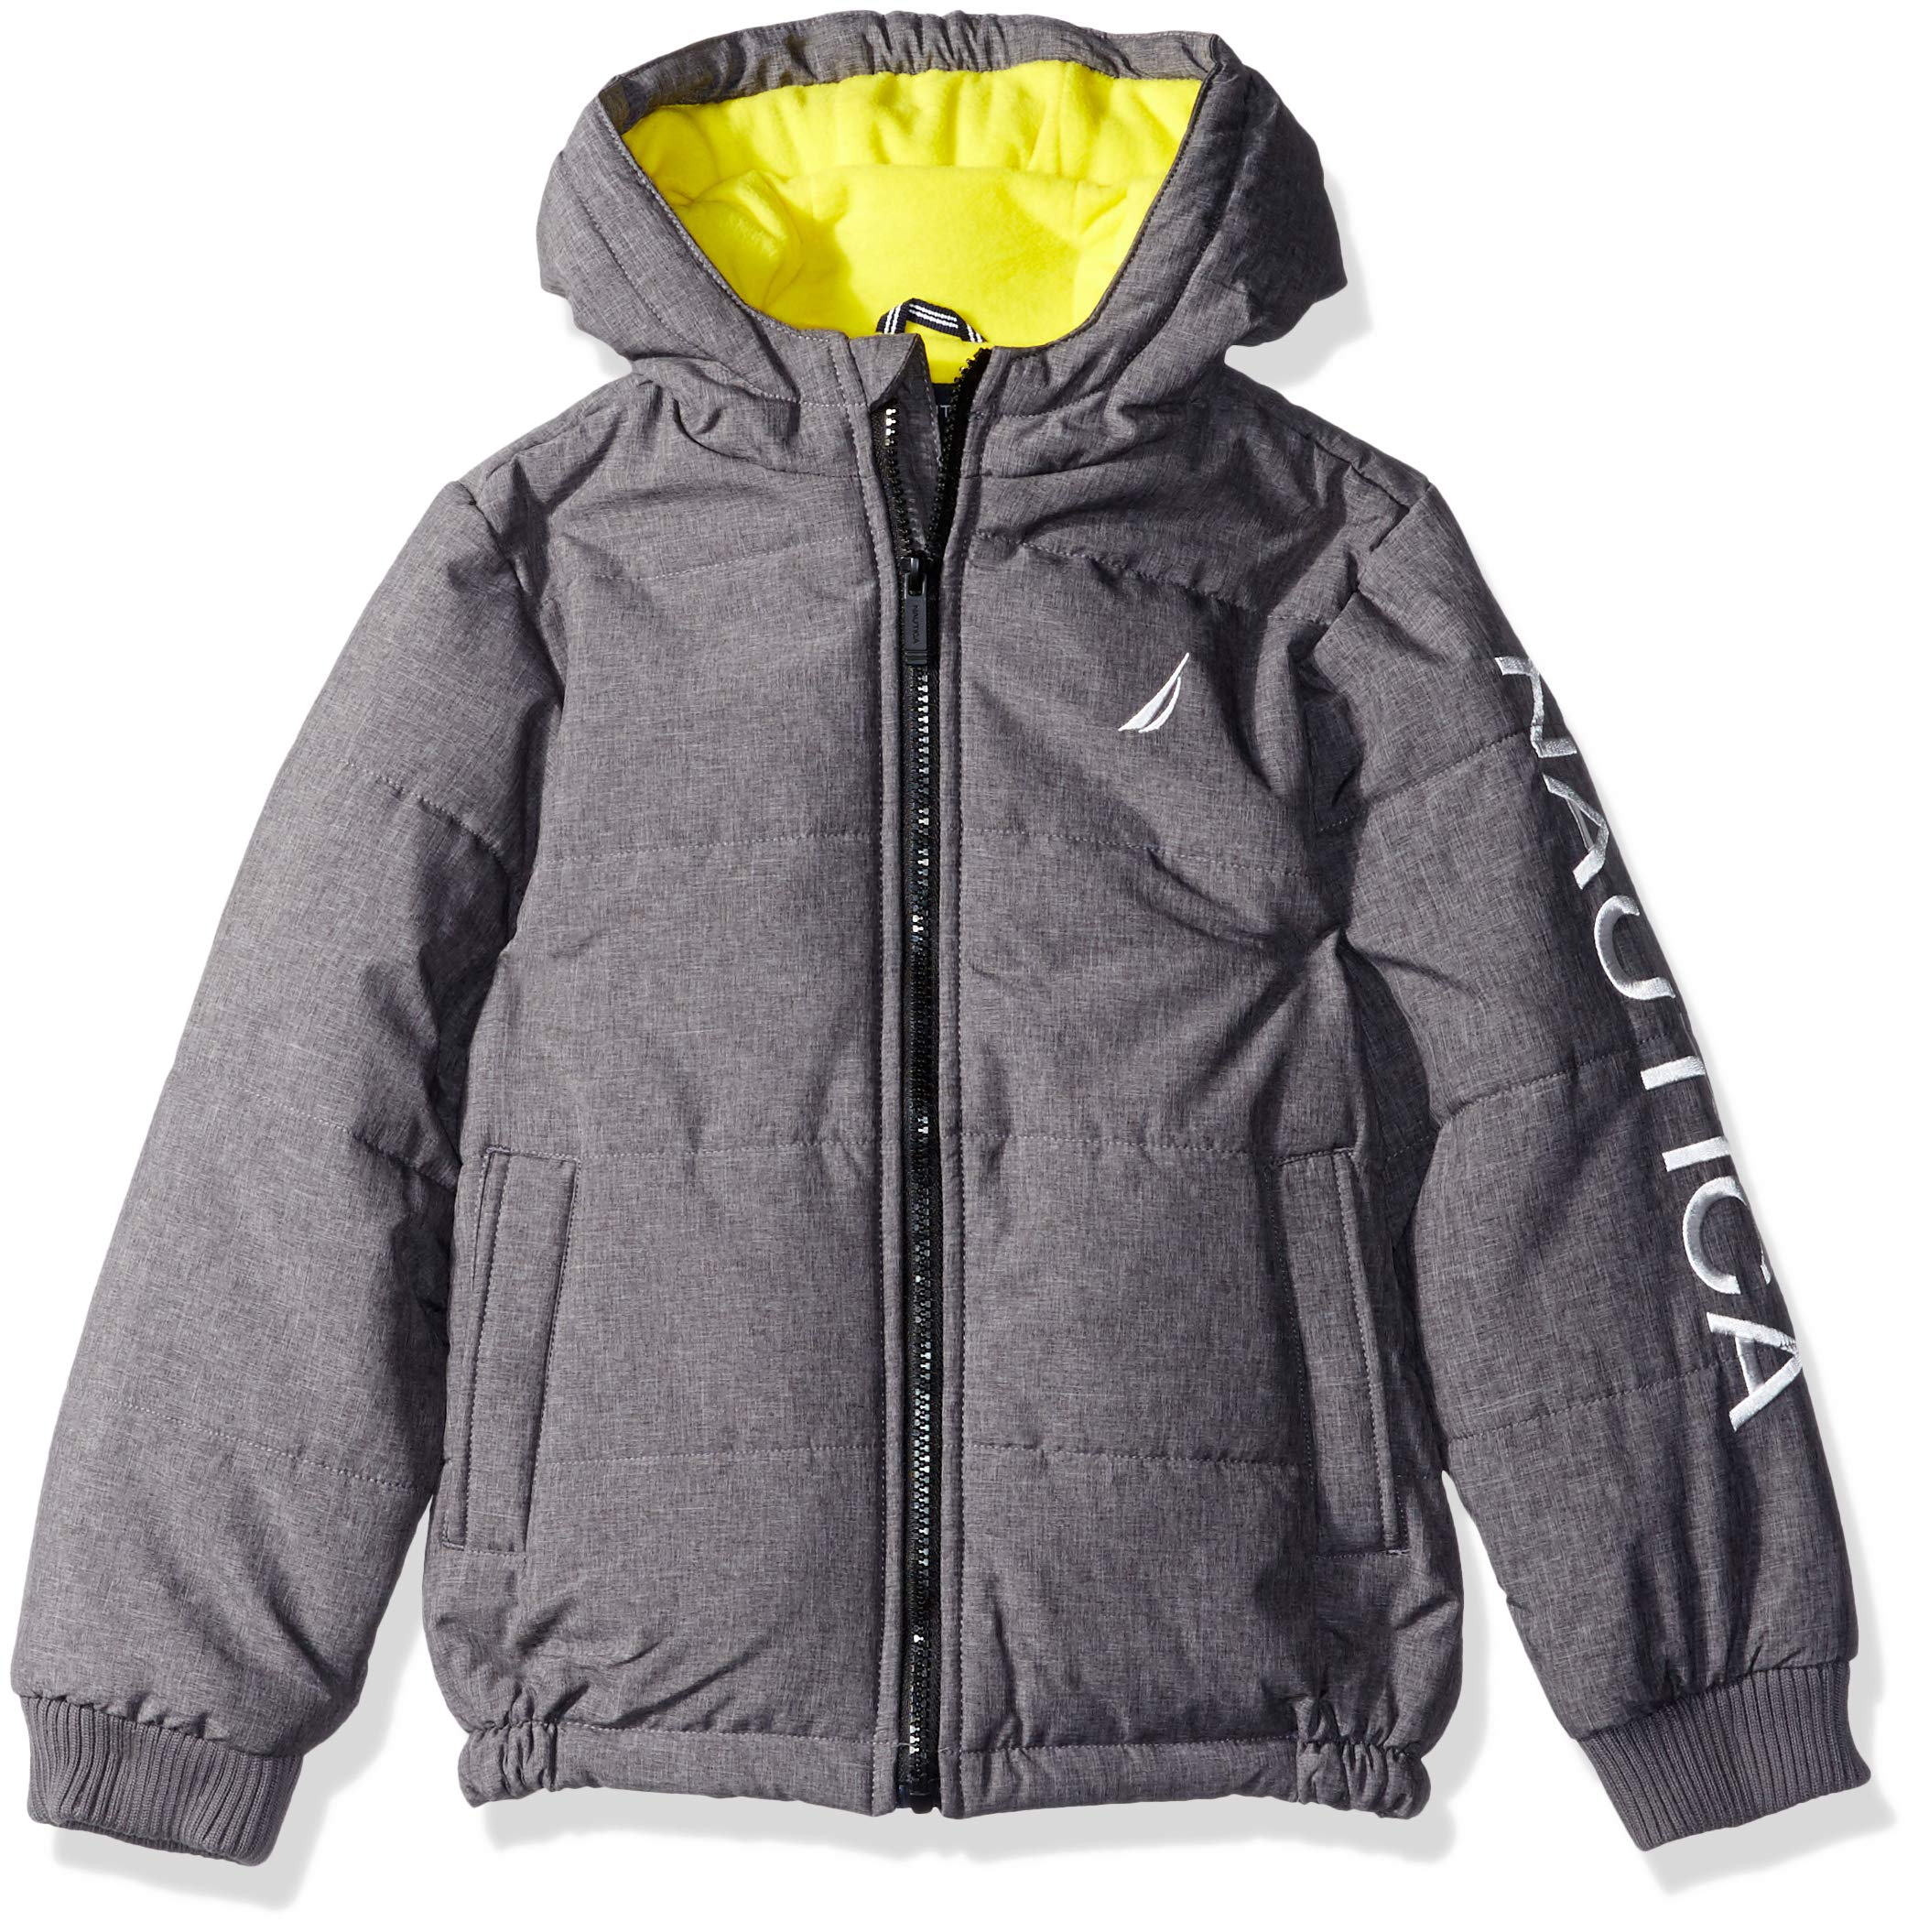 Nautica Boys' Big Water Resistant Signature Bubble Jacket with Storm Cuffs, Austin Coal Heather X-Large (18/20)